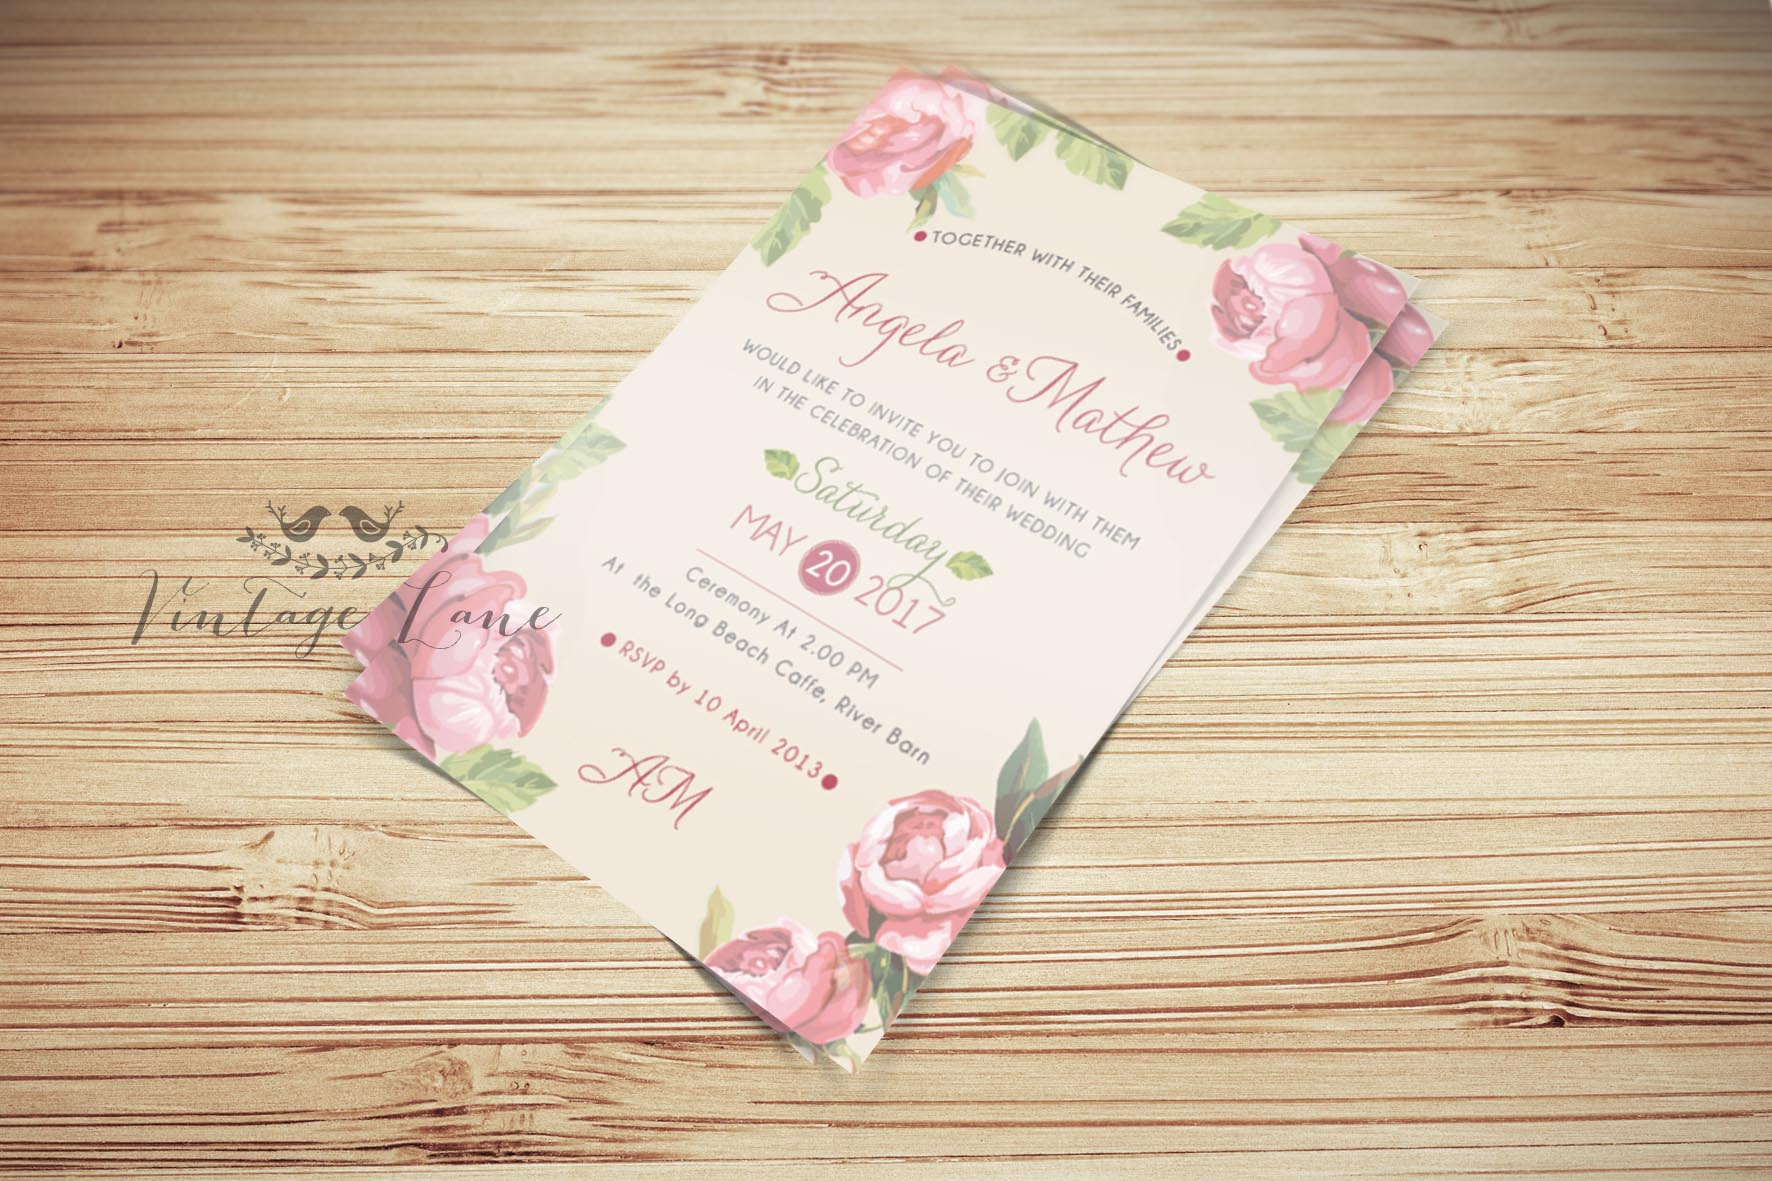 Wedding invitations suggestions for wedding abroad archives pink peonies wedding invitations personalised cork ireland vintage lane stopboris Image collections